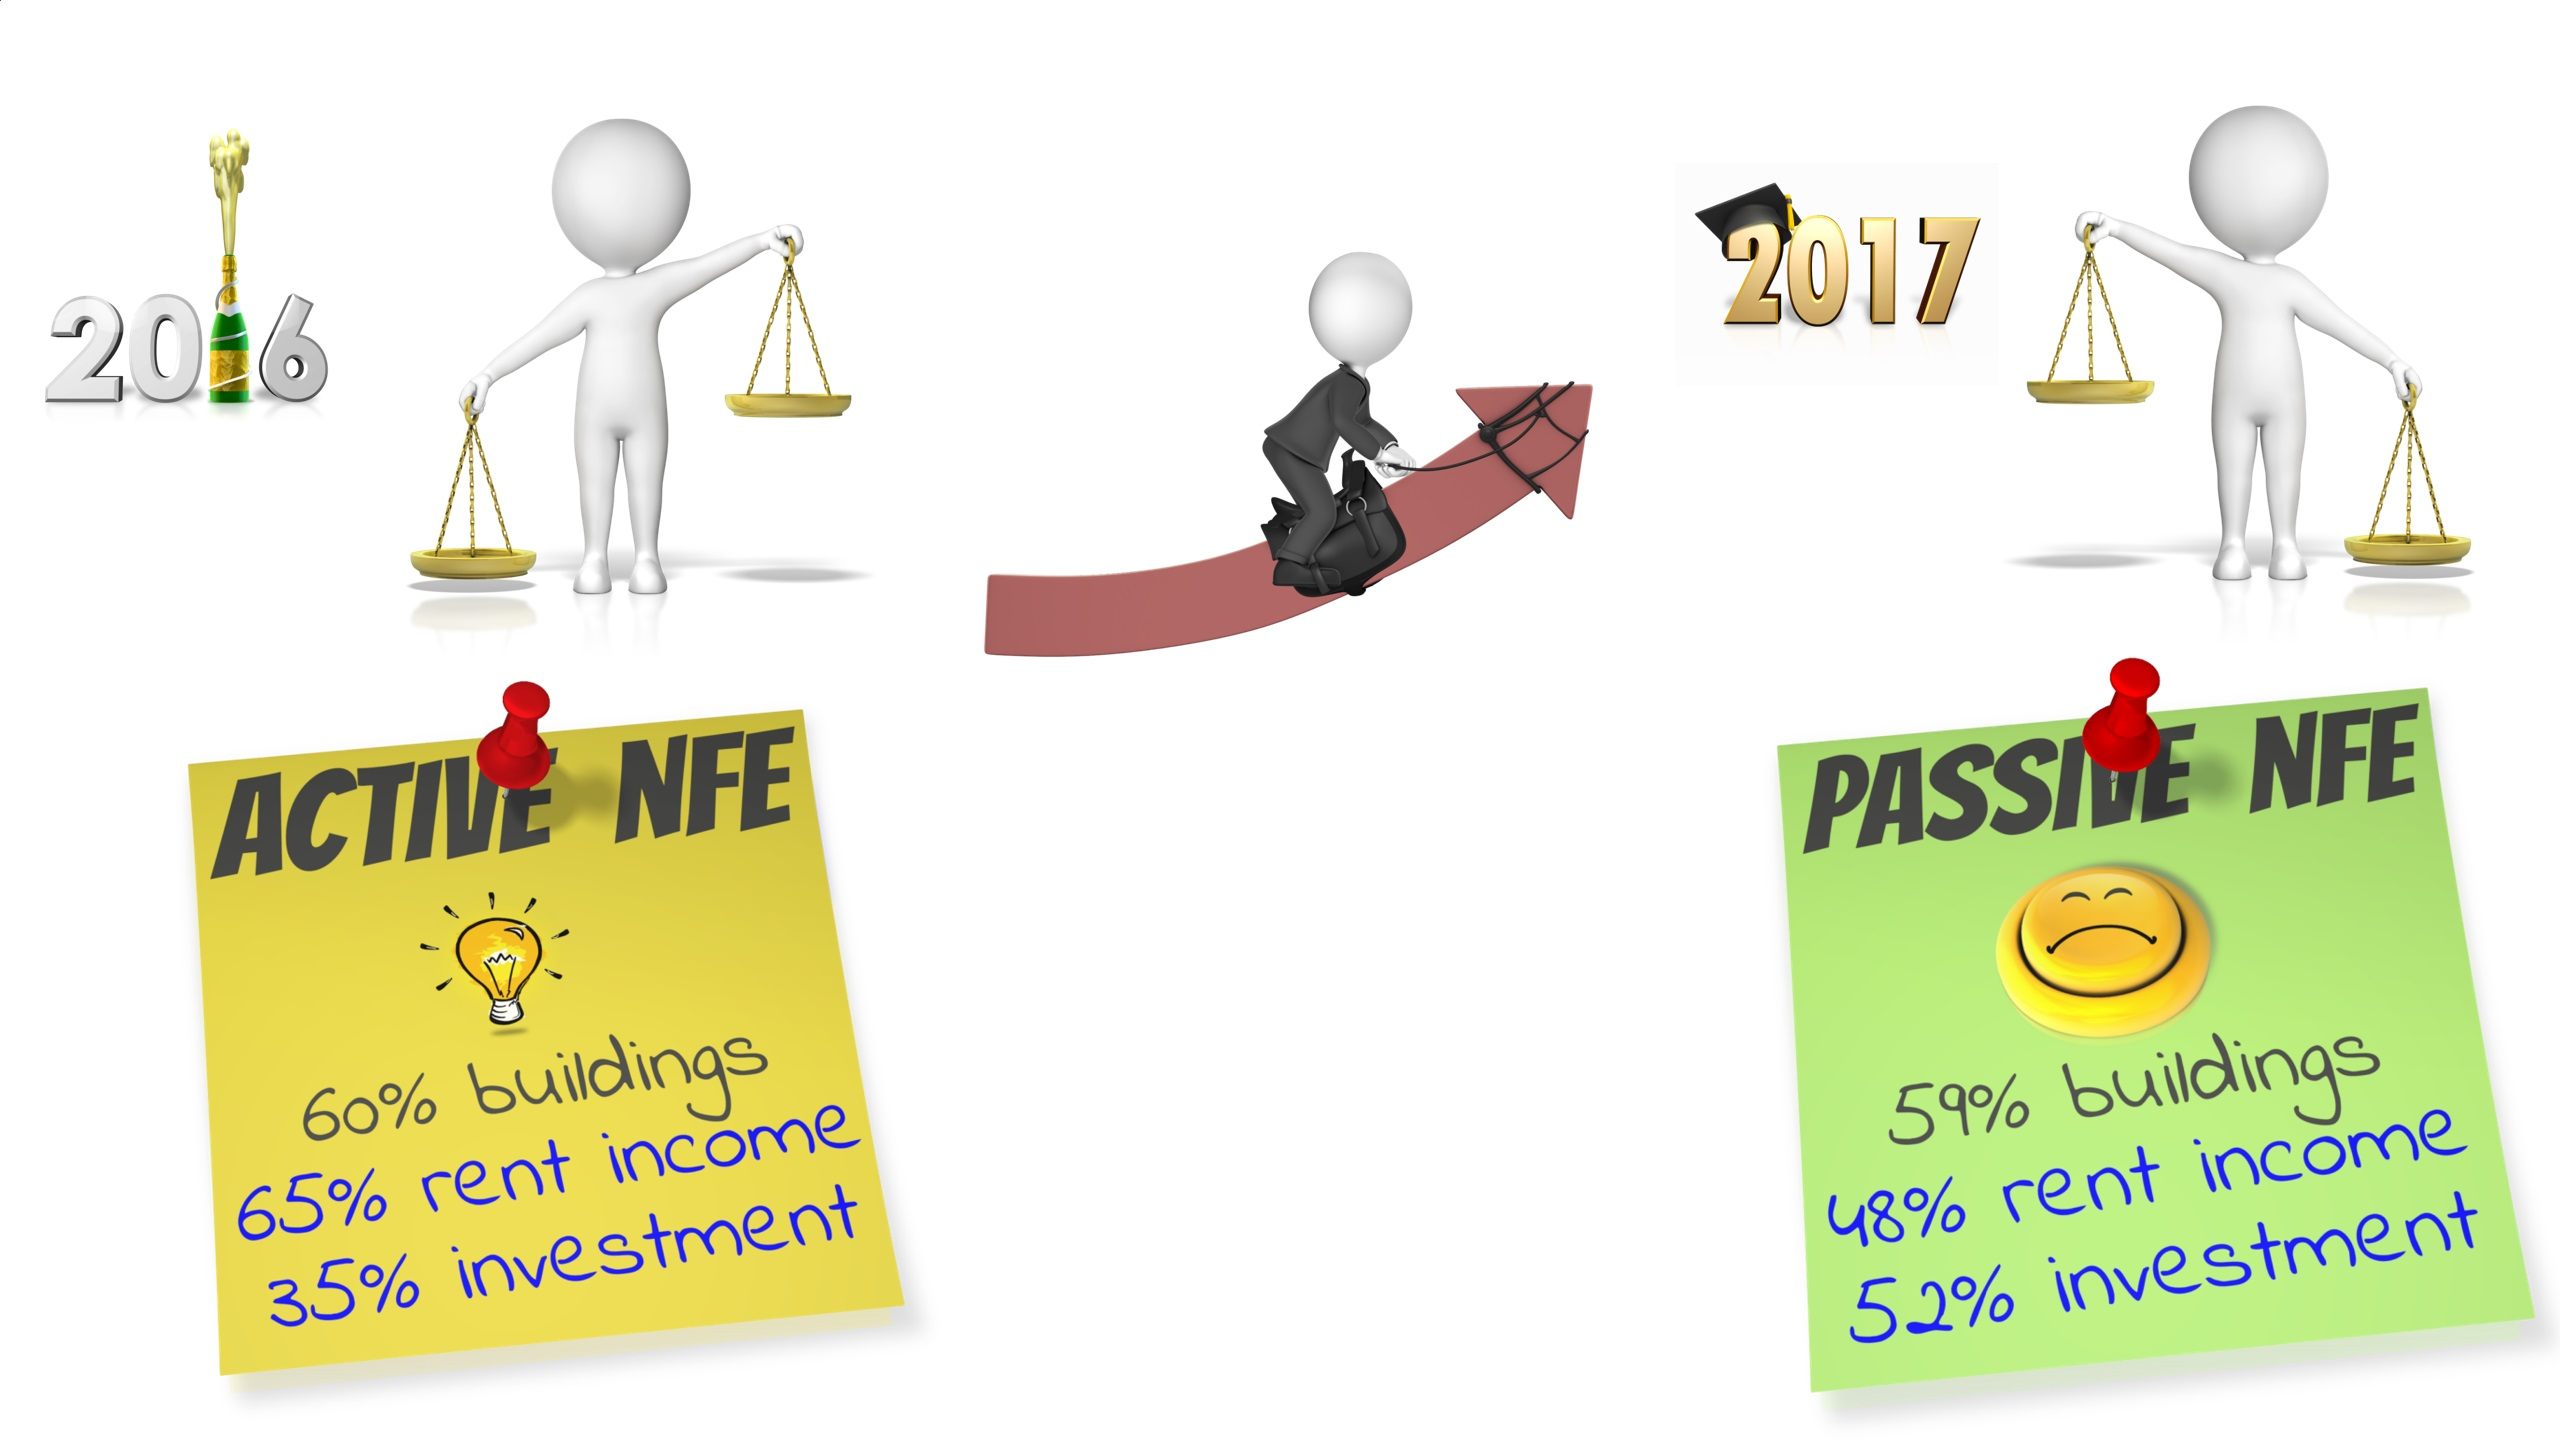 Active vs passive clipart graphic transparent stock Active NFE as a solution for CRS graphic transparent stock